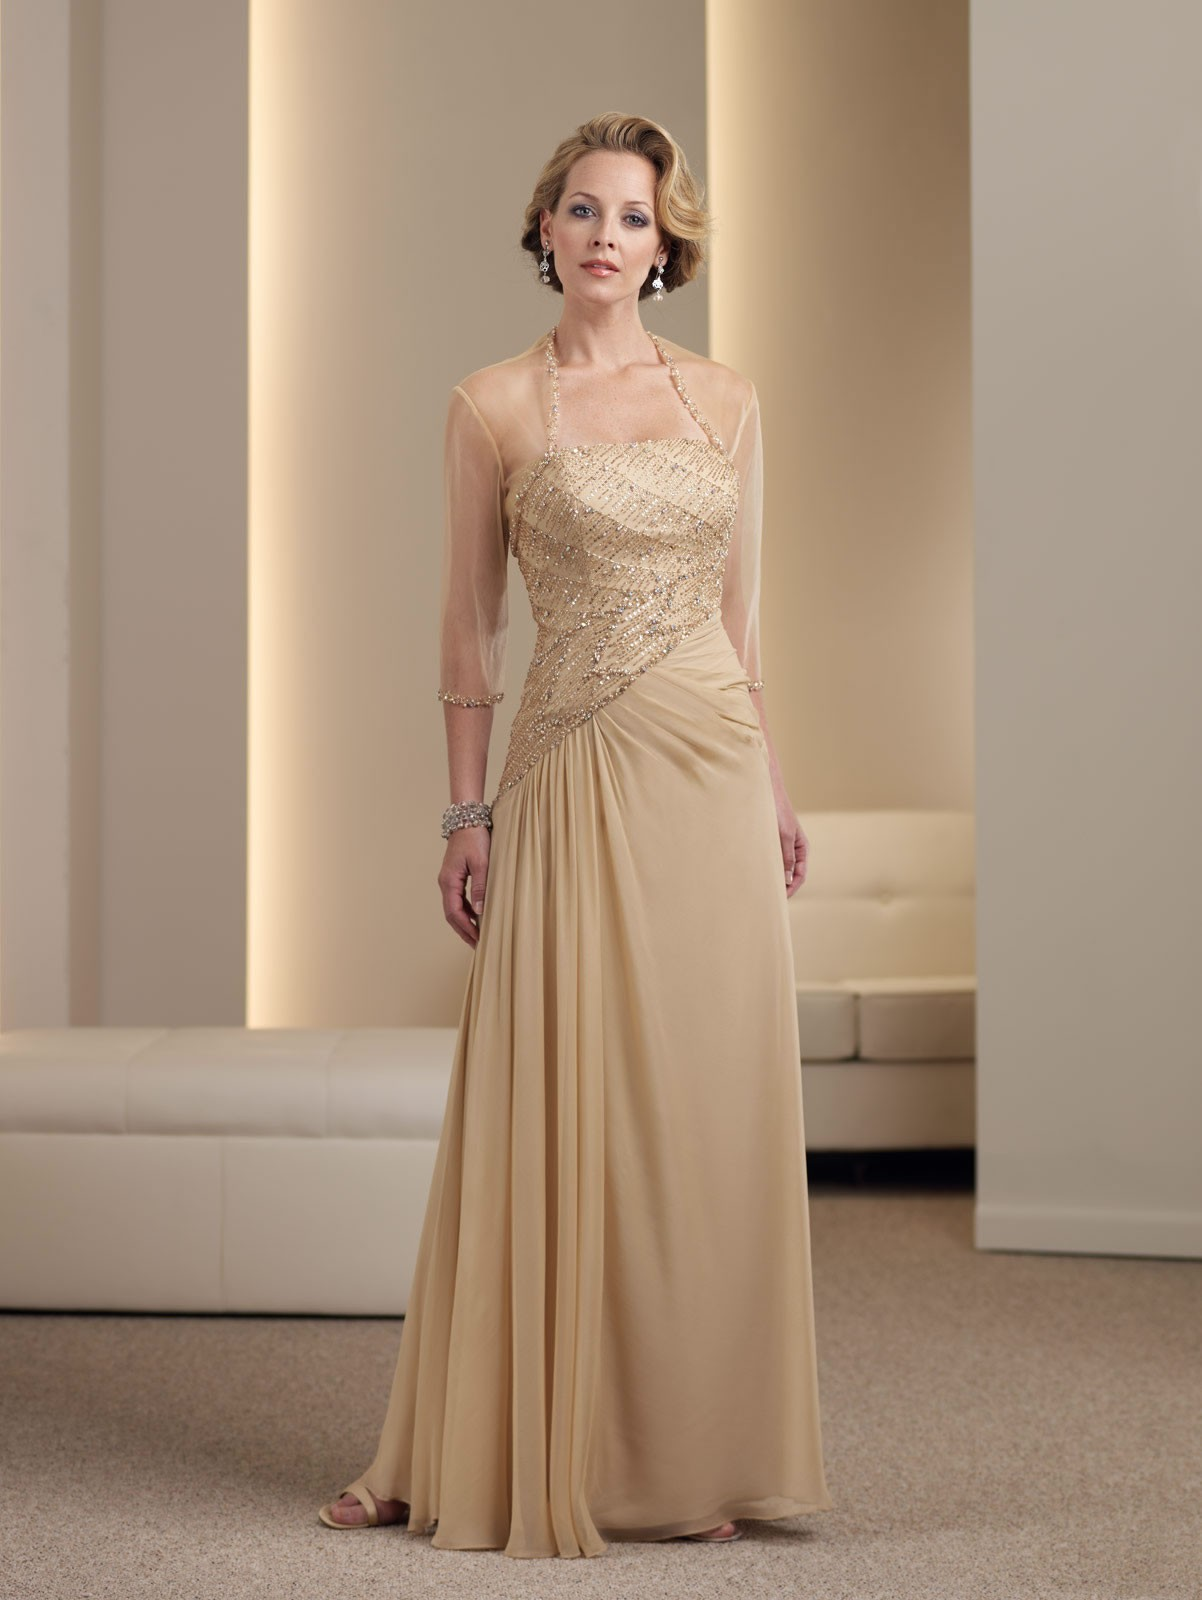 Tips: Choosing a Mother of the Bride Dress